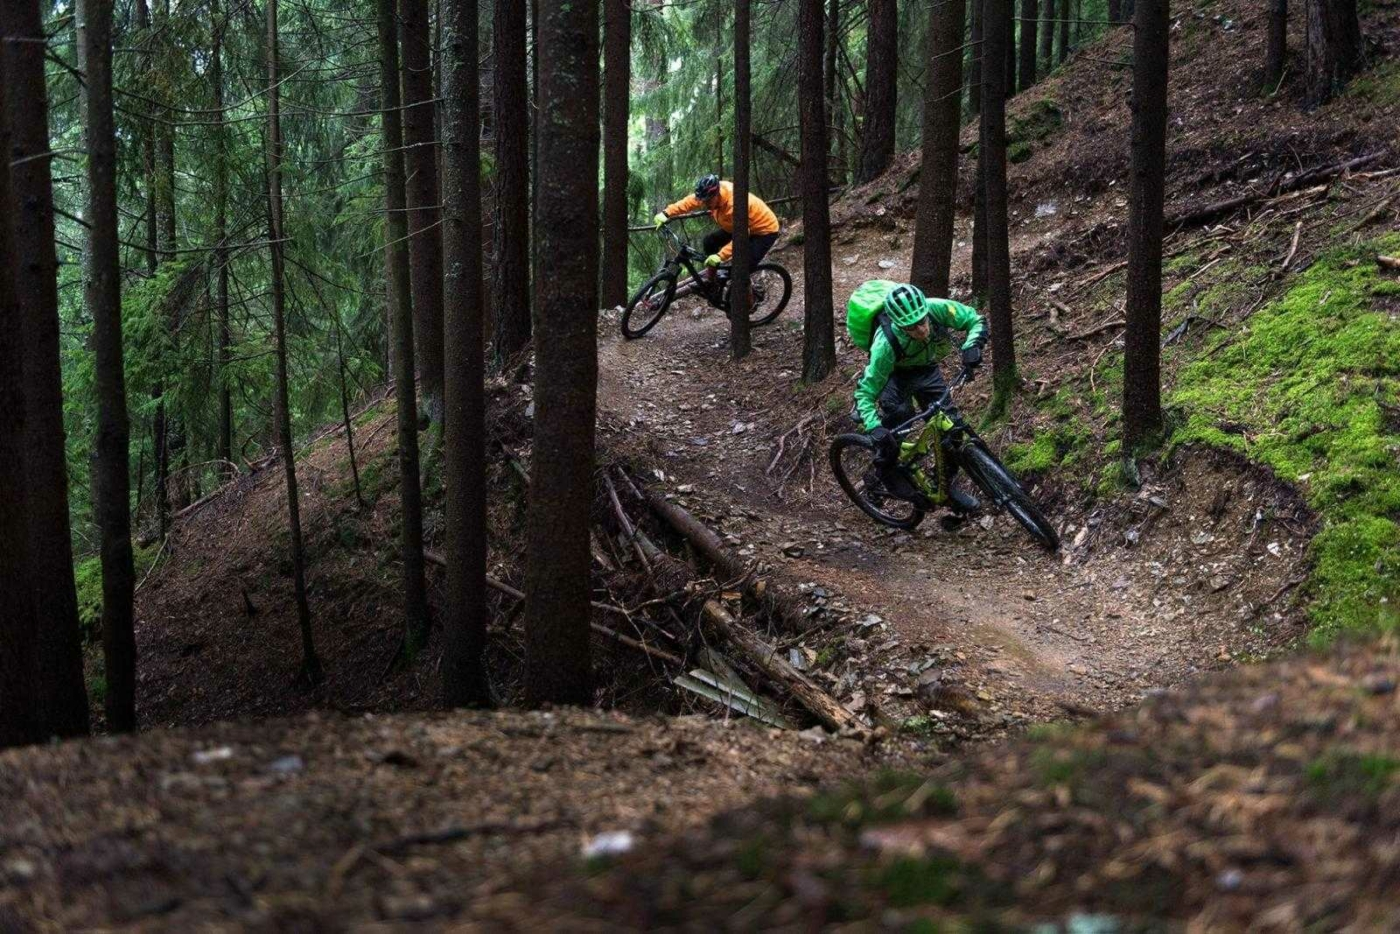 Two mountain bikers riding quickly through a winding forest trail